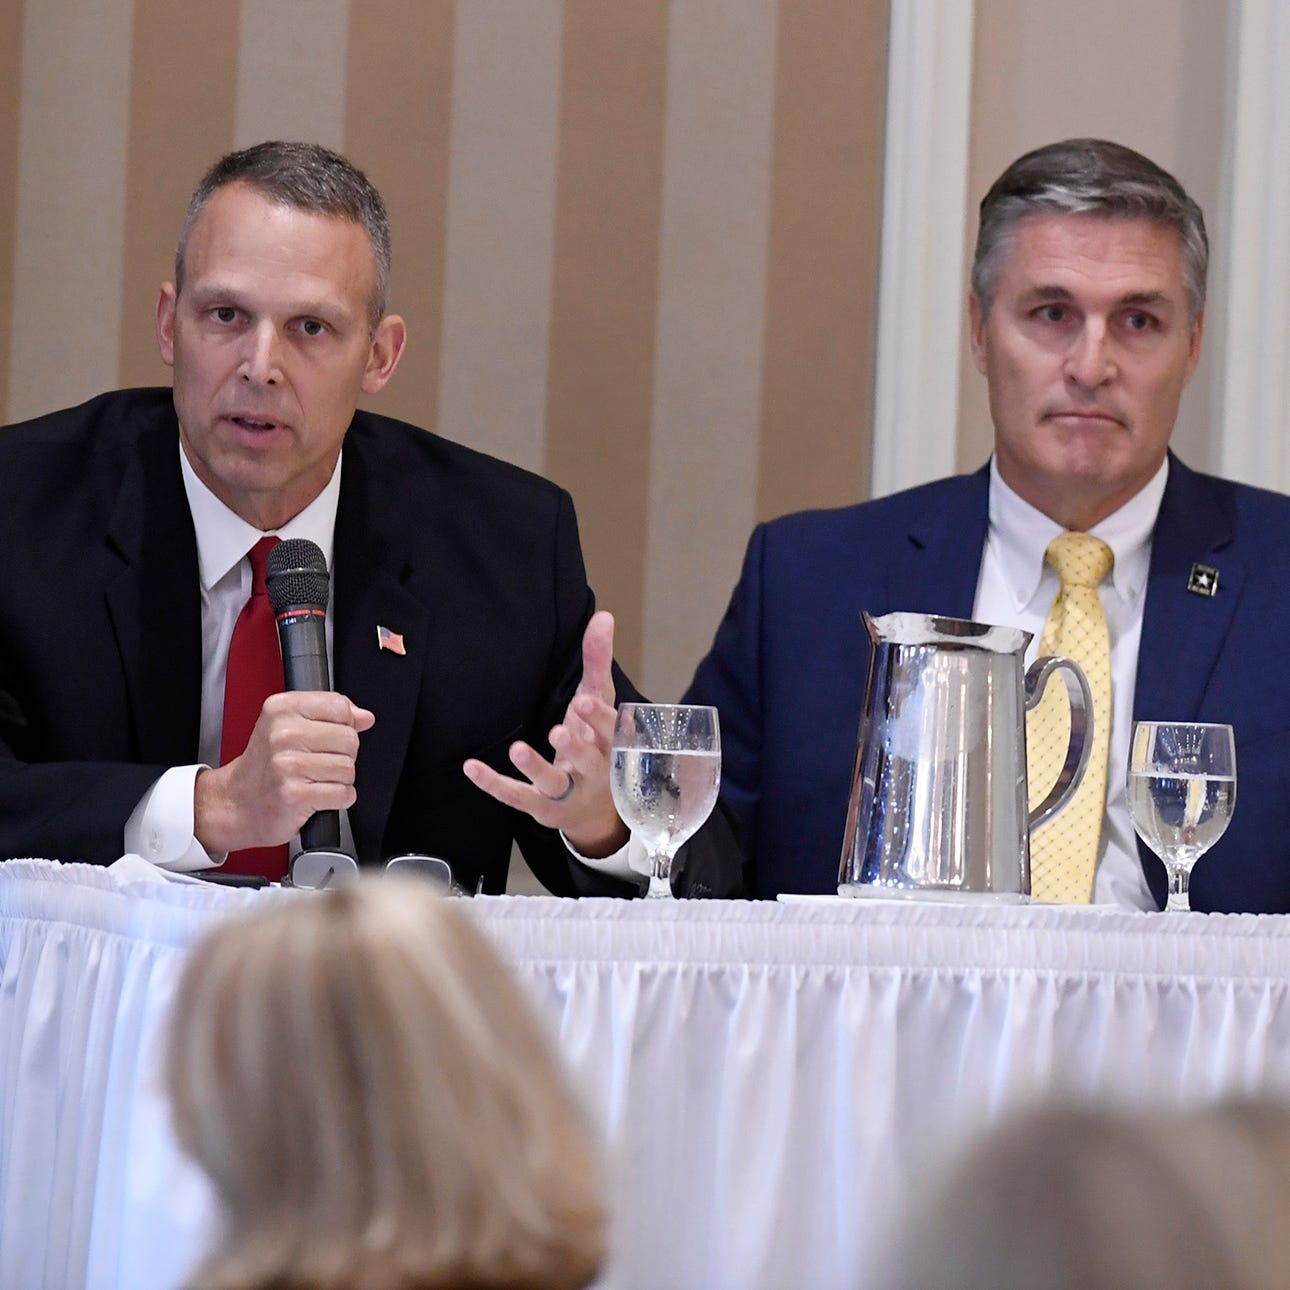 Rep. Scott Perry, George Scott clash over Freedom Caucus during debate